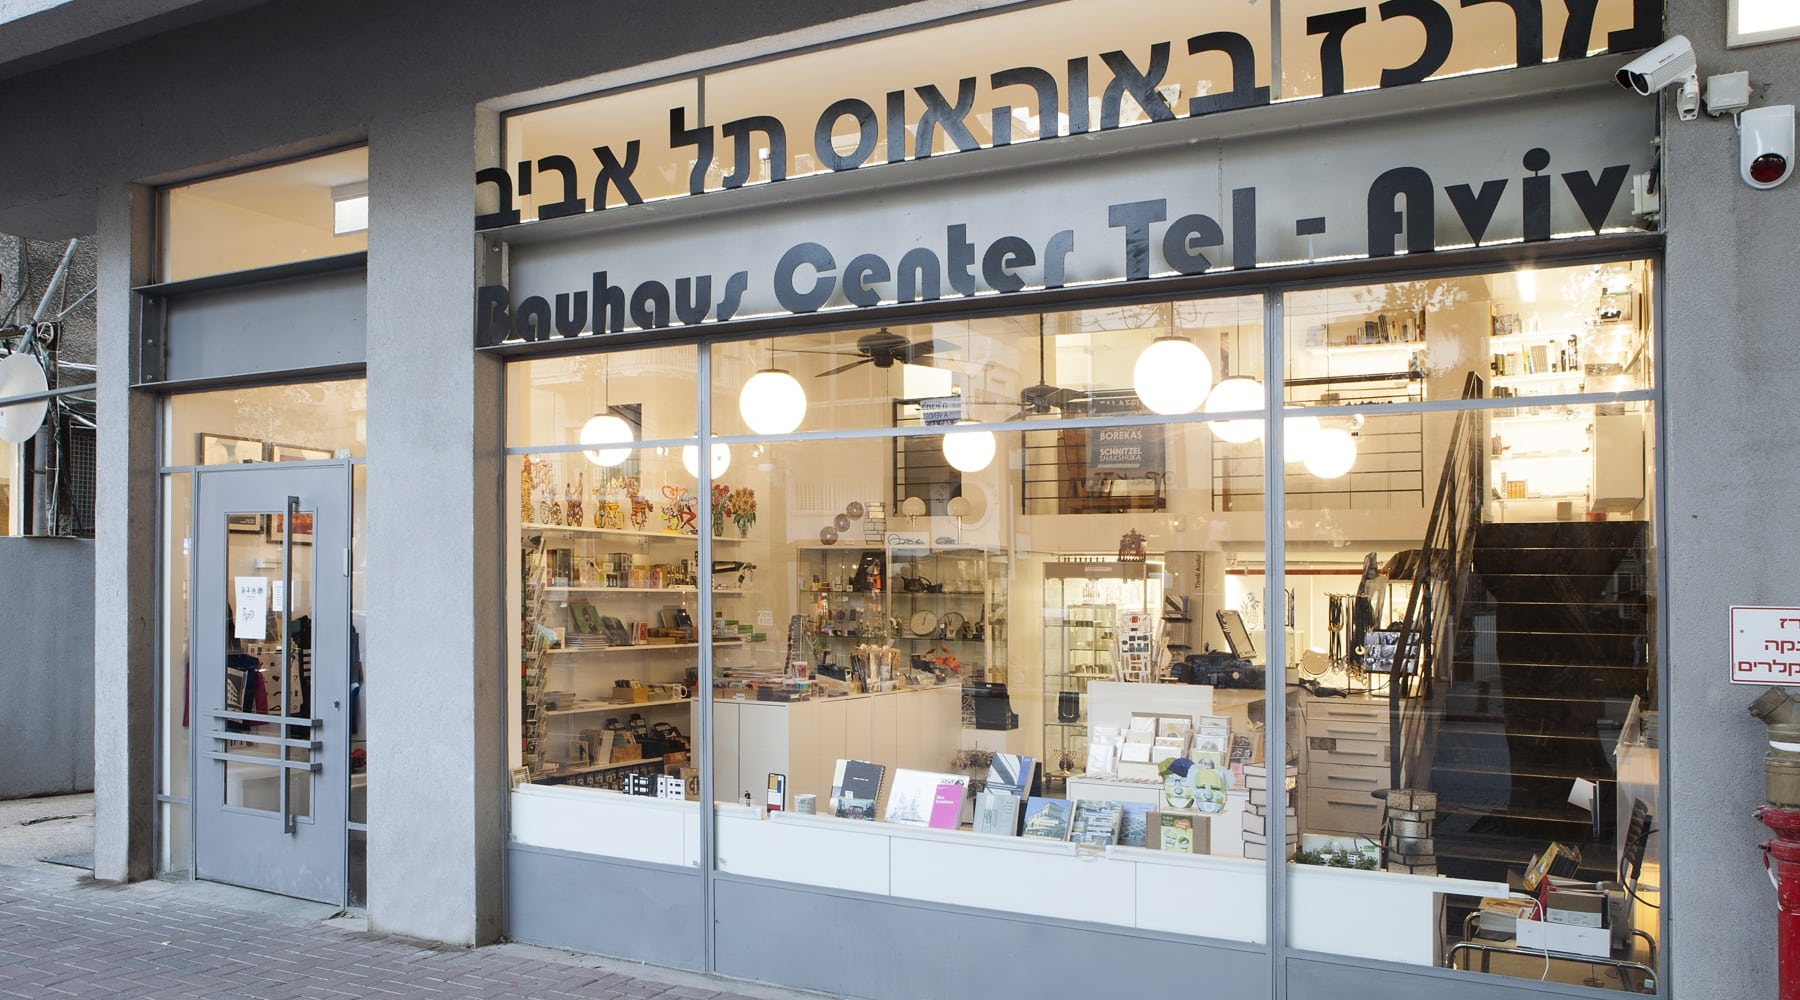 Bauhaus Center Tel Aviv Tours Information Exhibition Shop